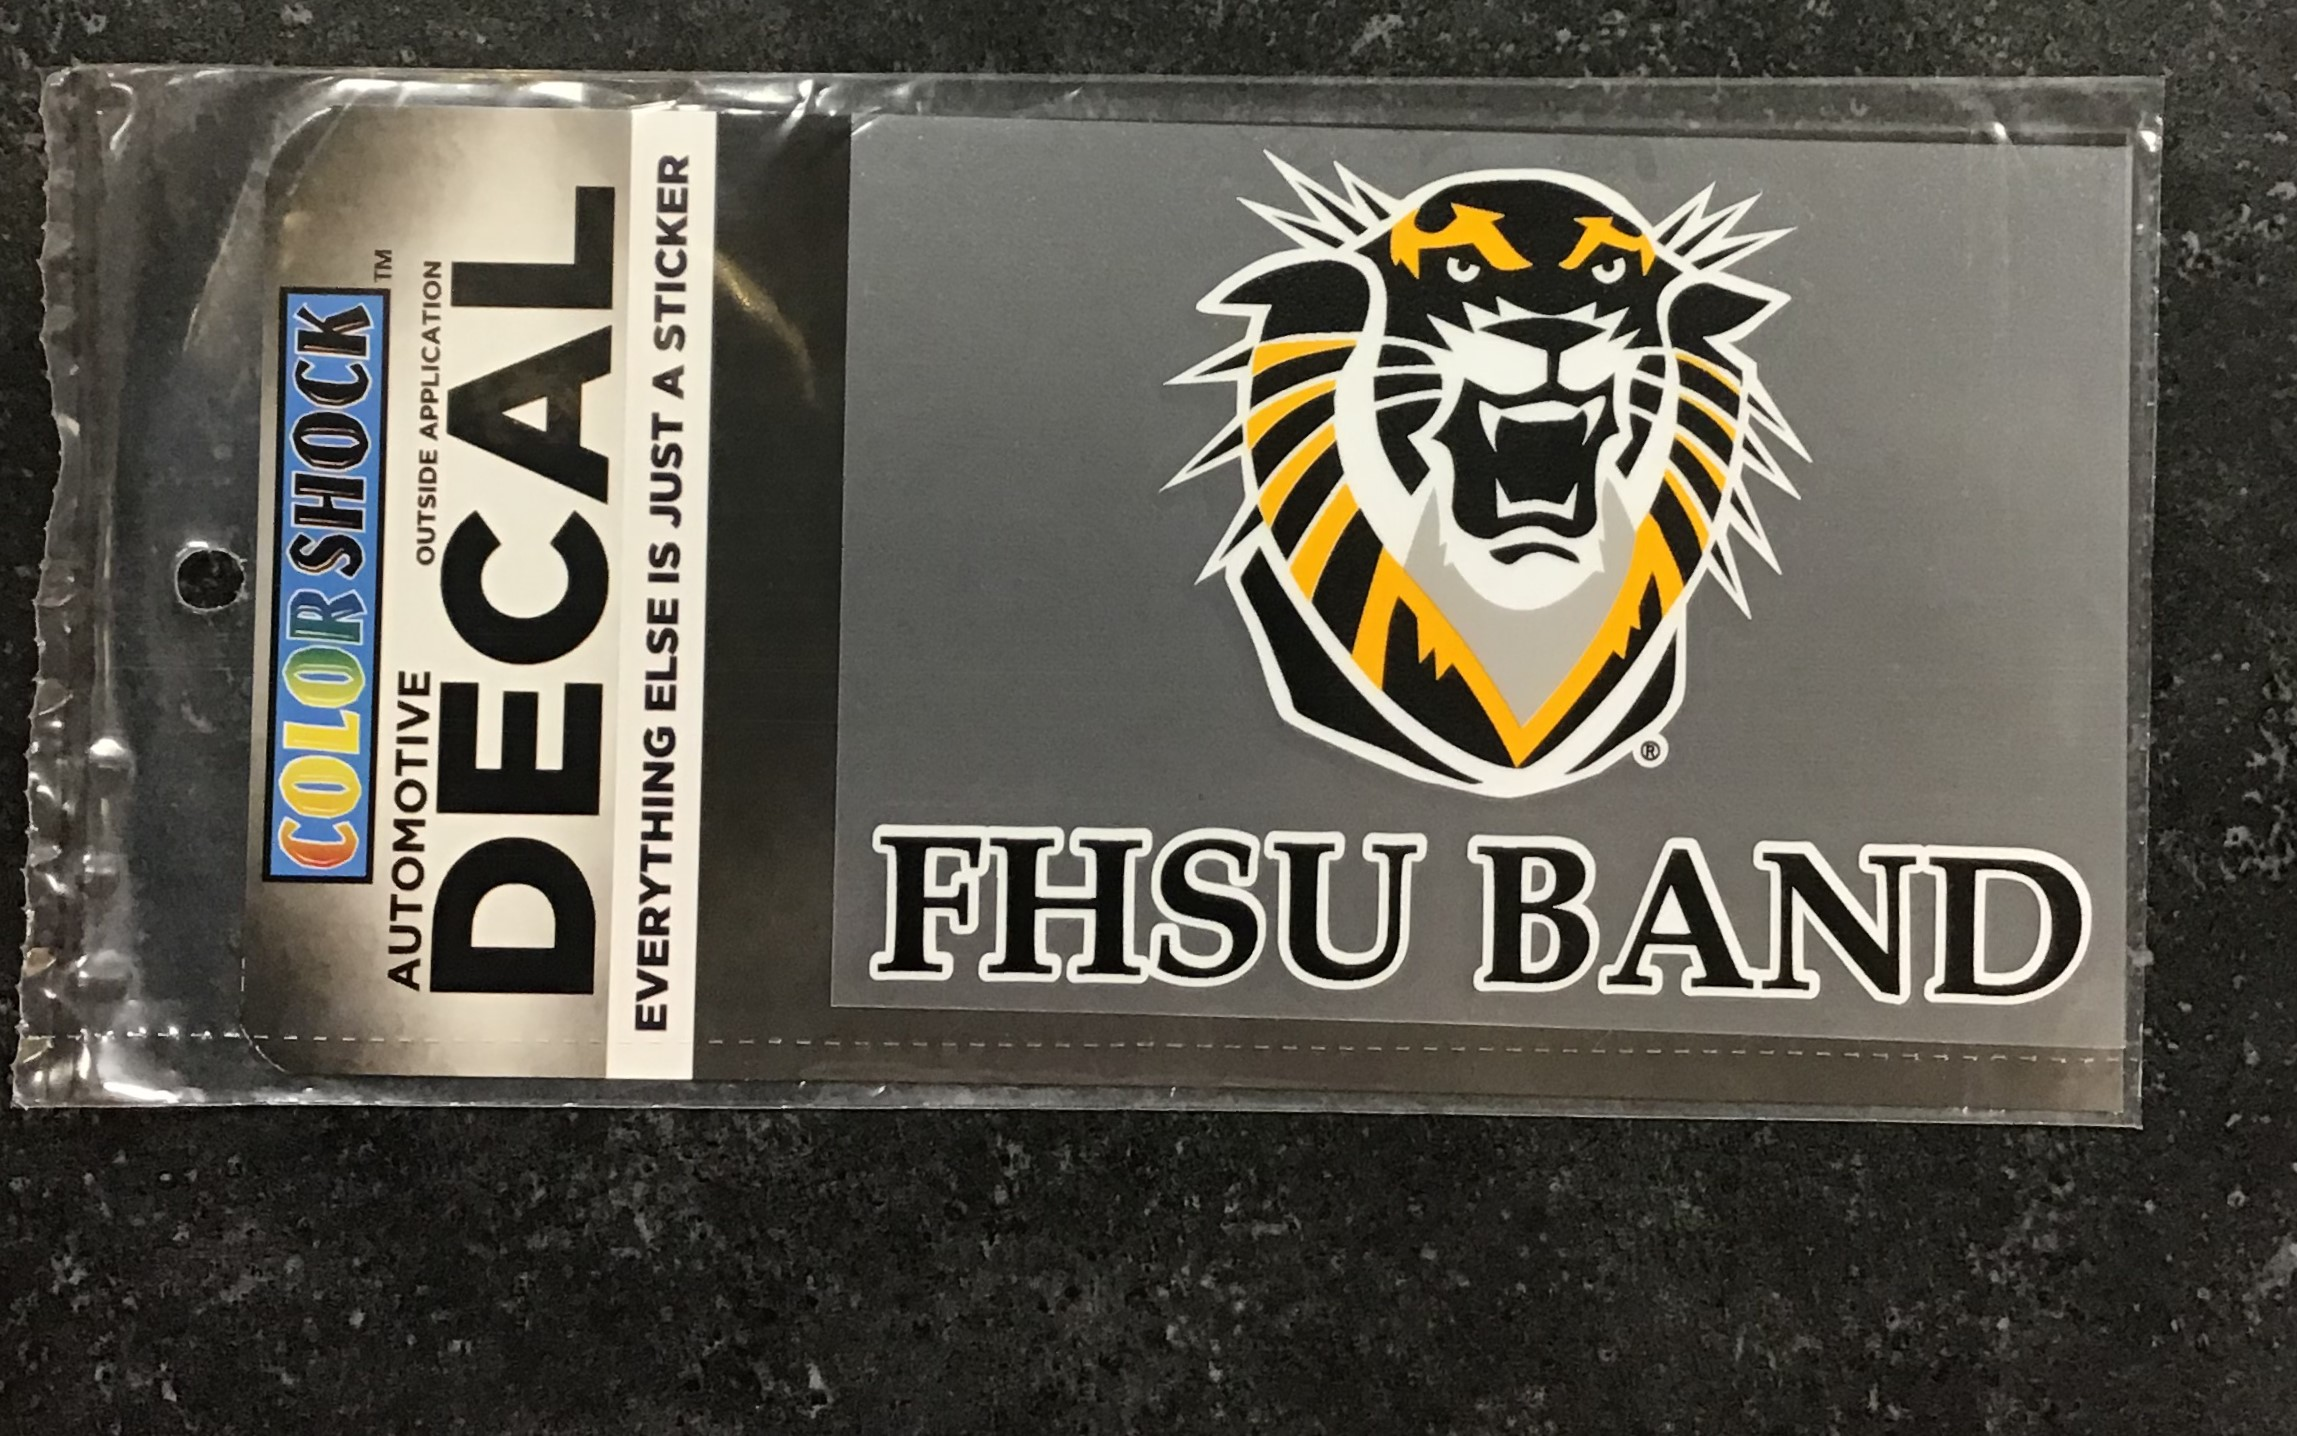 Image for the FHSU Band Decal; Color Shock product